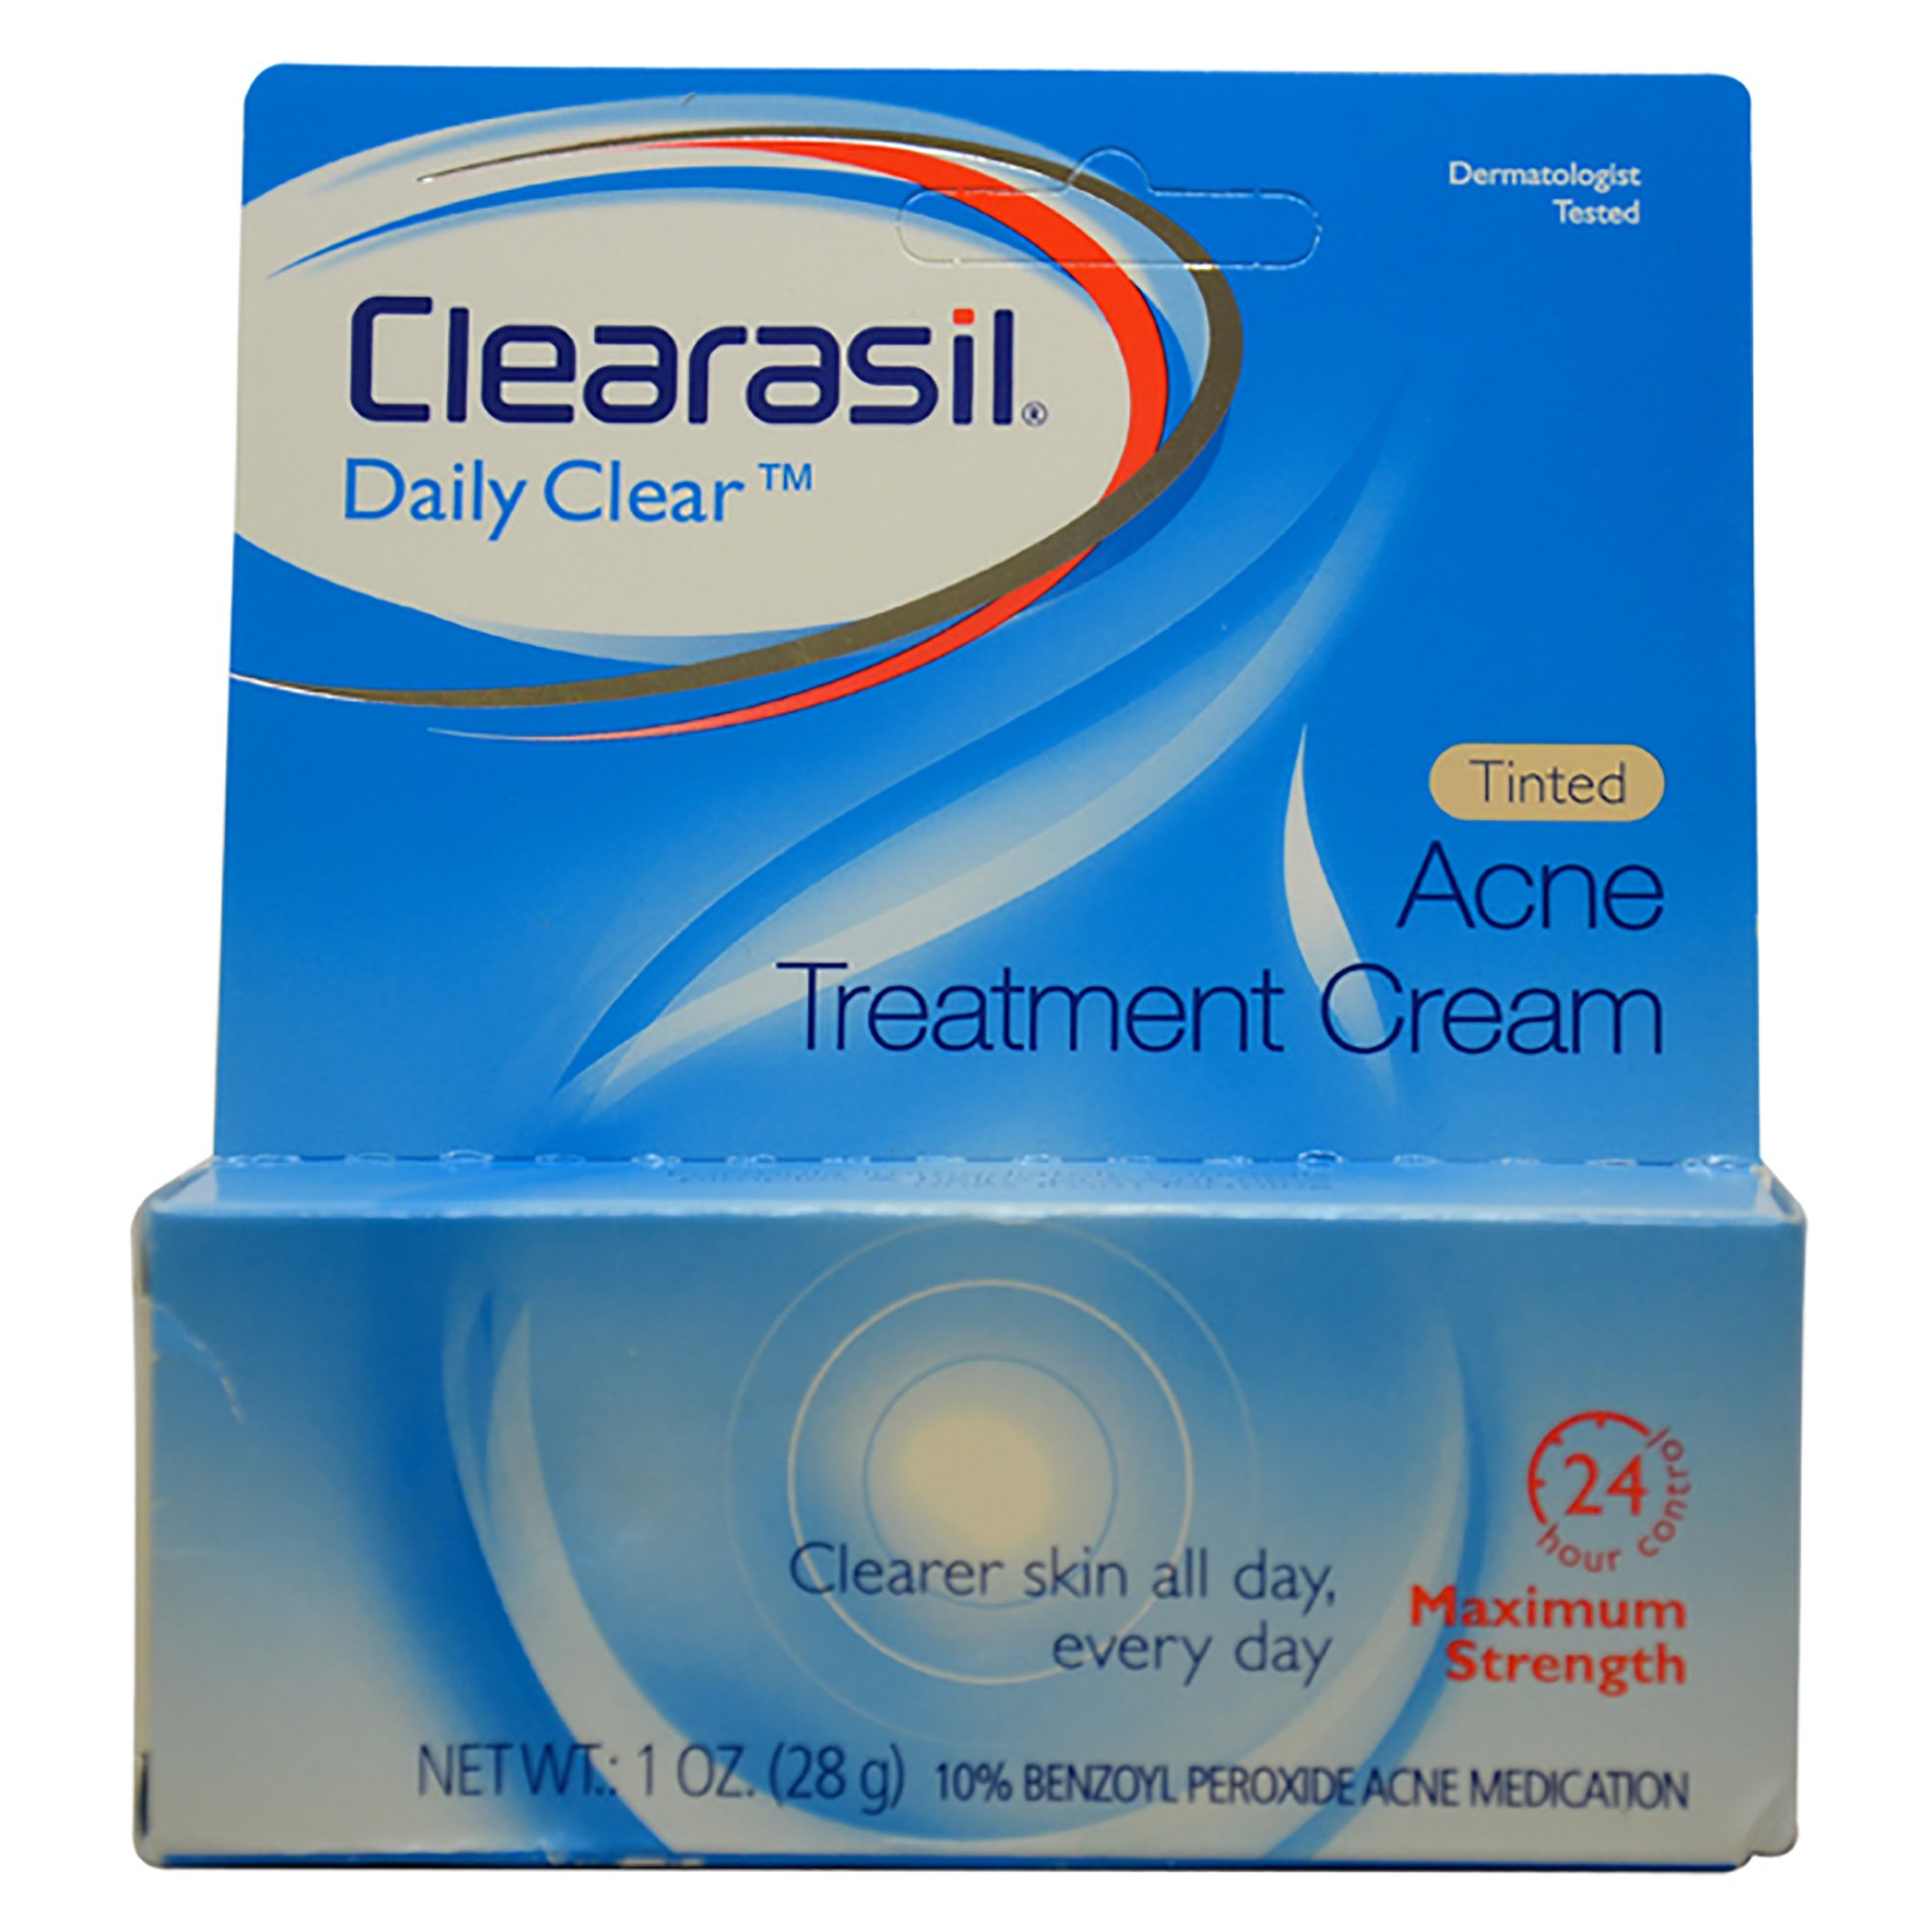 Clearasil Tinted Acne Treatment Cream, 1 Ounce by Clearasil